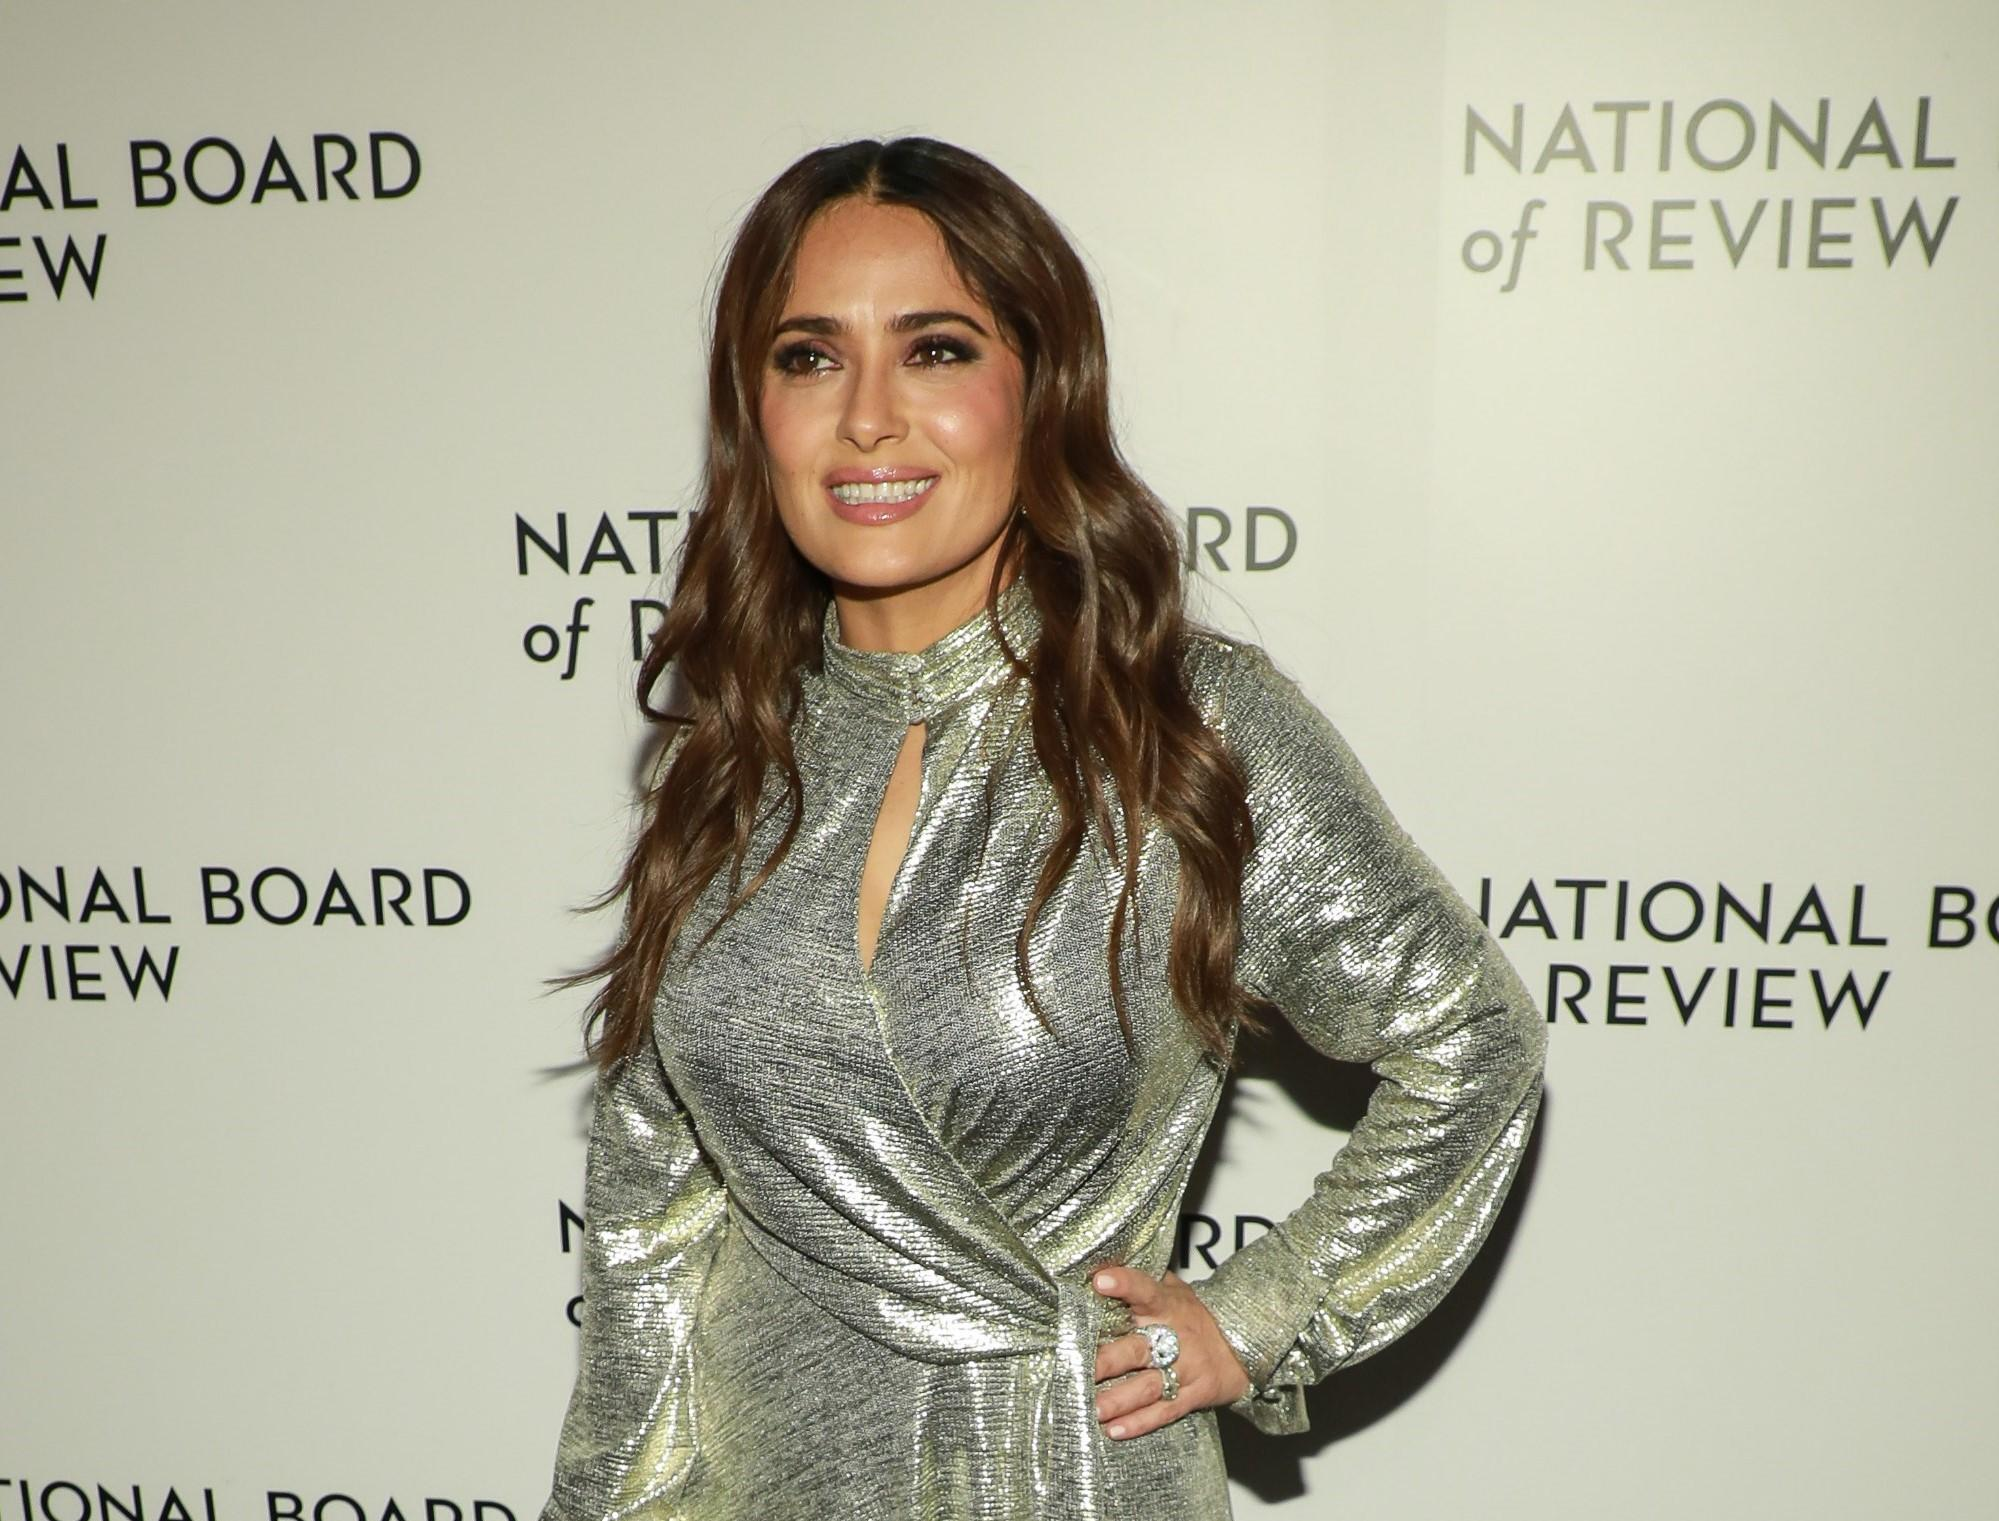 Salma Hayek Gets Real About Why Her Breasts Have Gotten Bigger Over the Years - Yahoo Entertainment